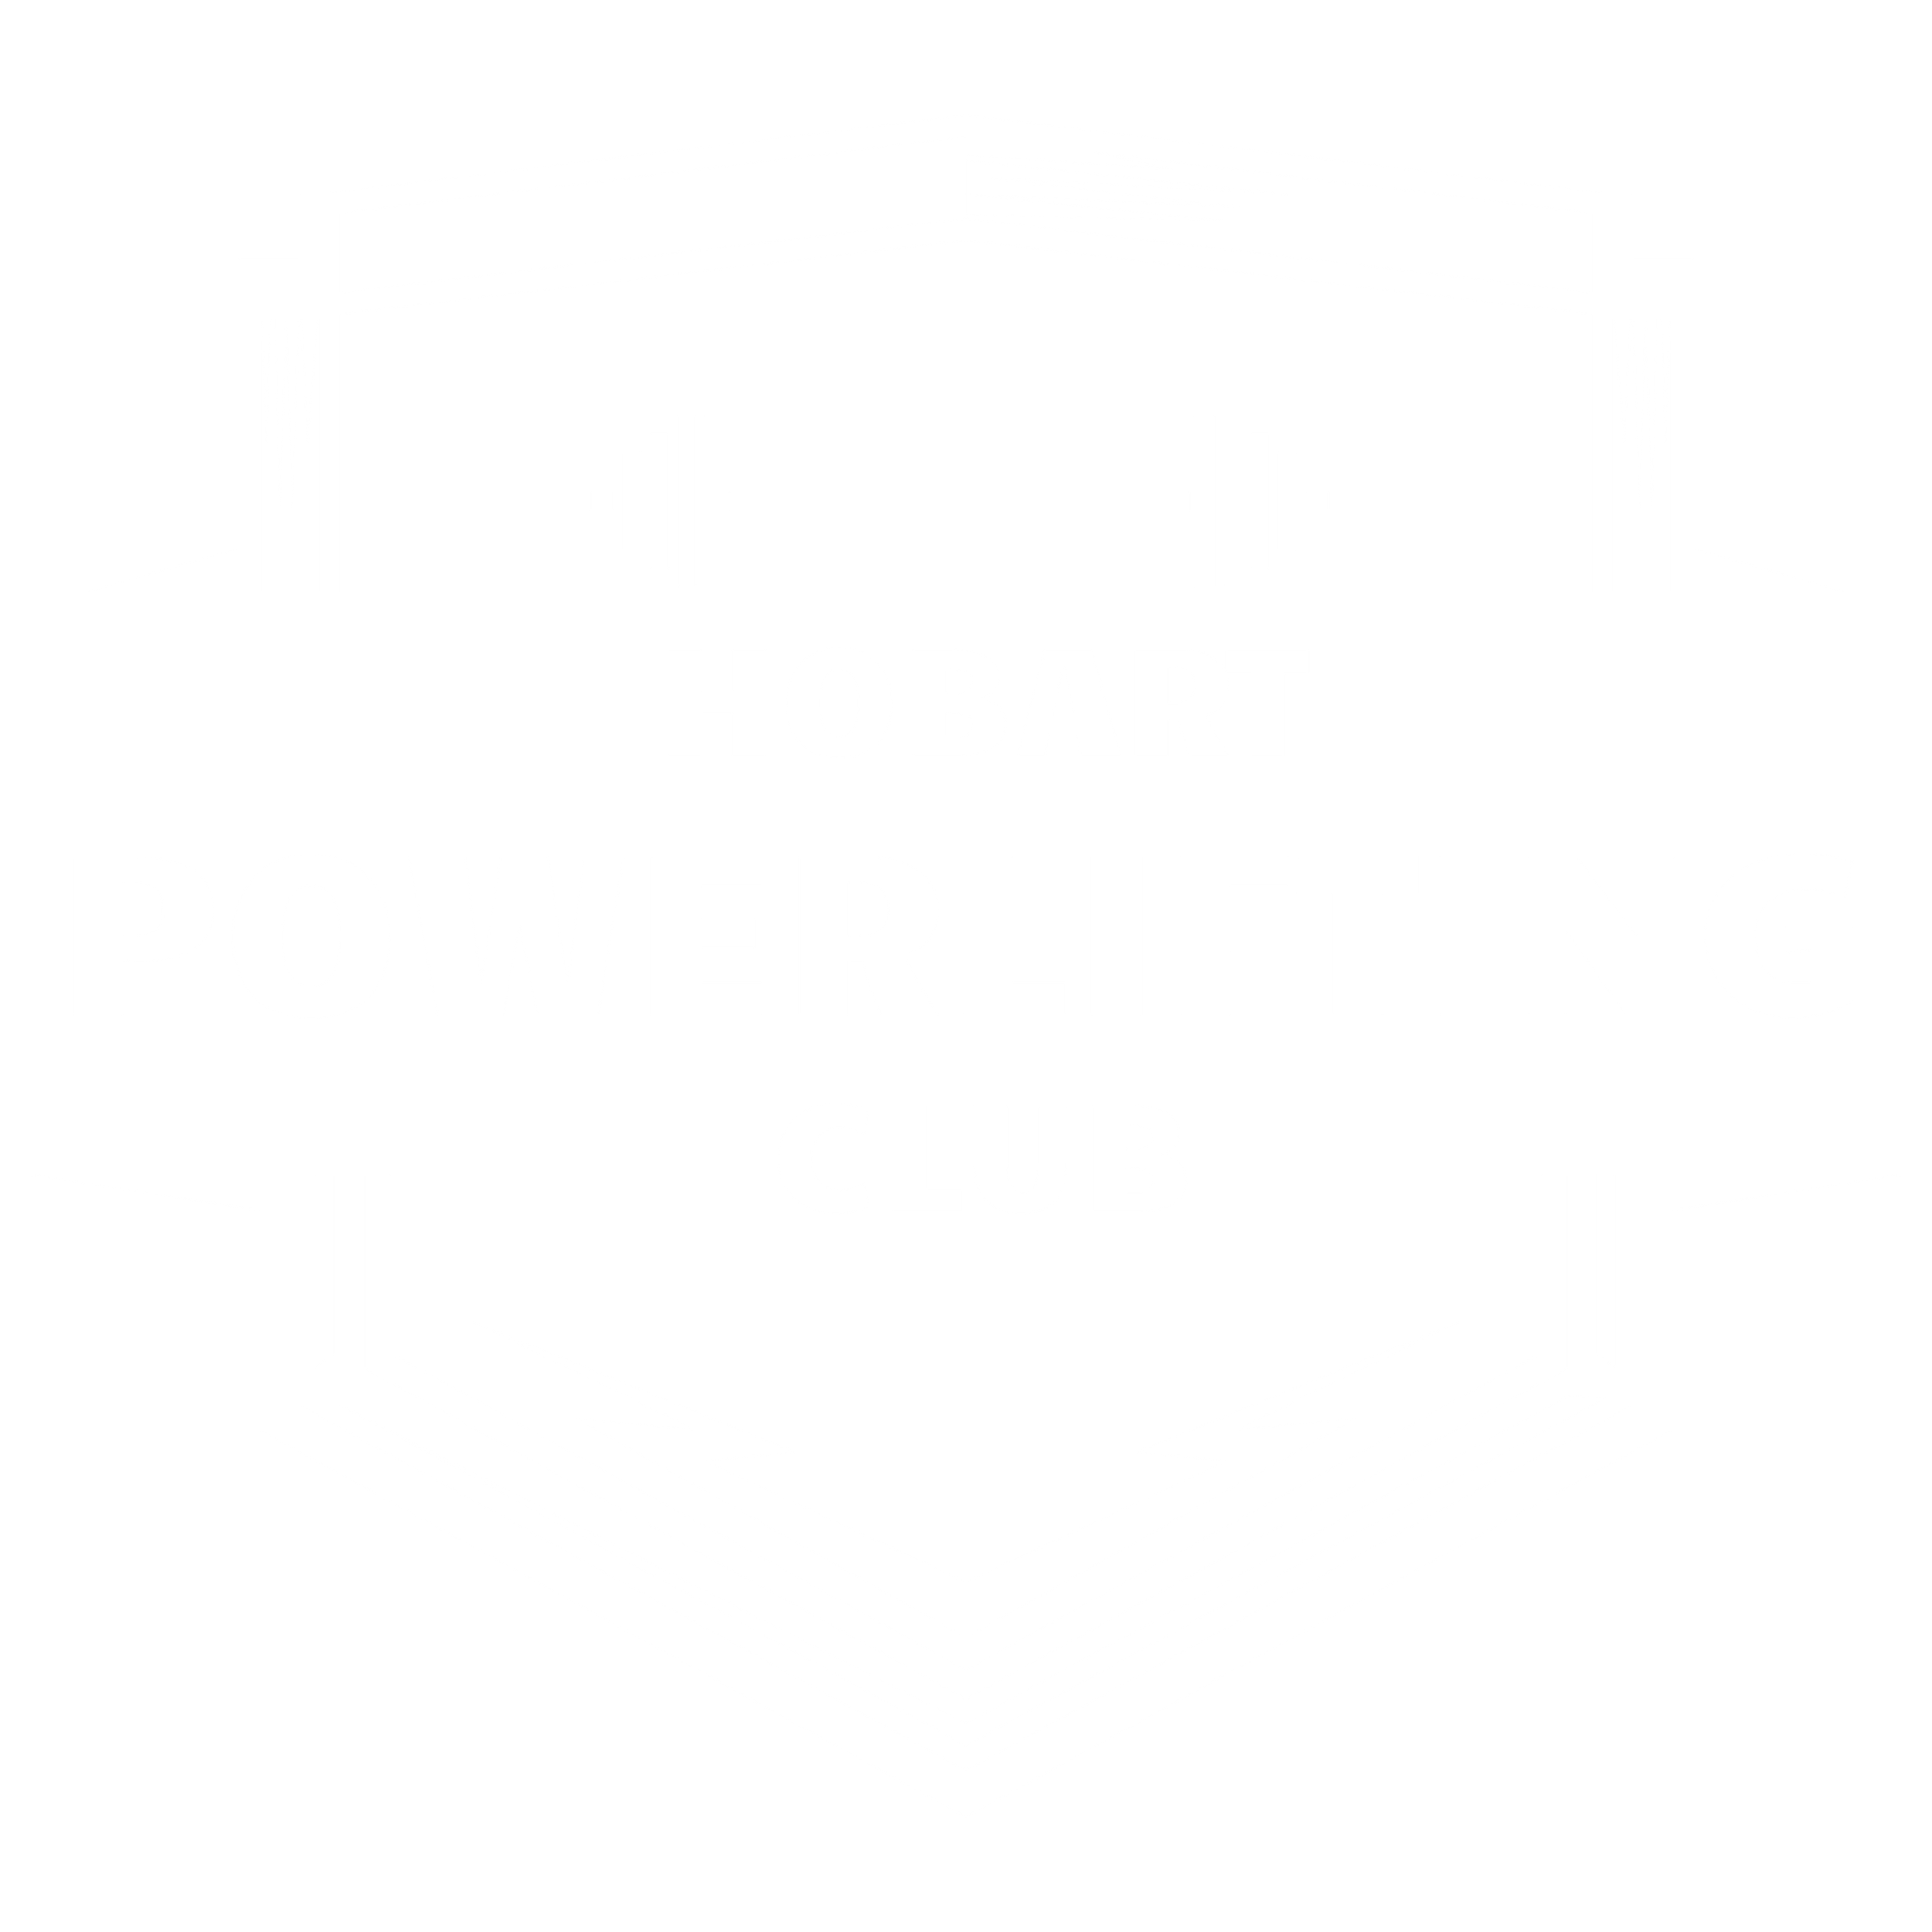 Hobart Powerlifting Club